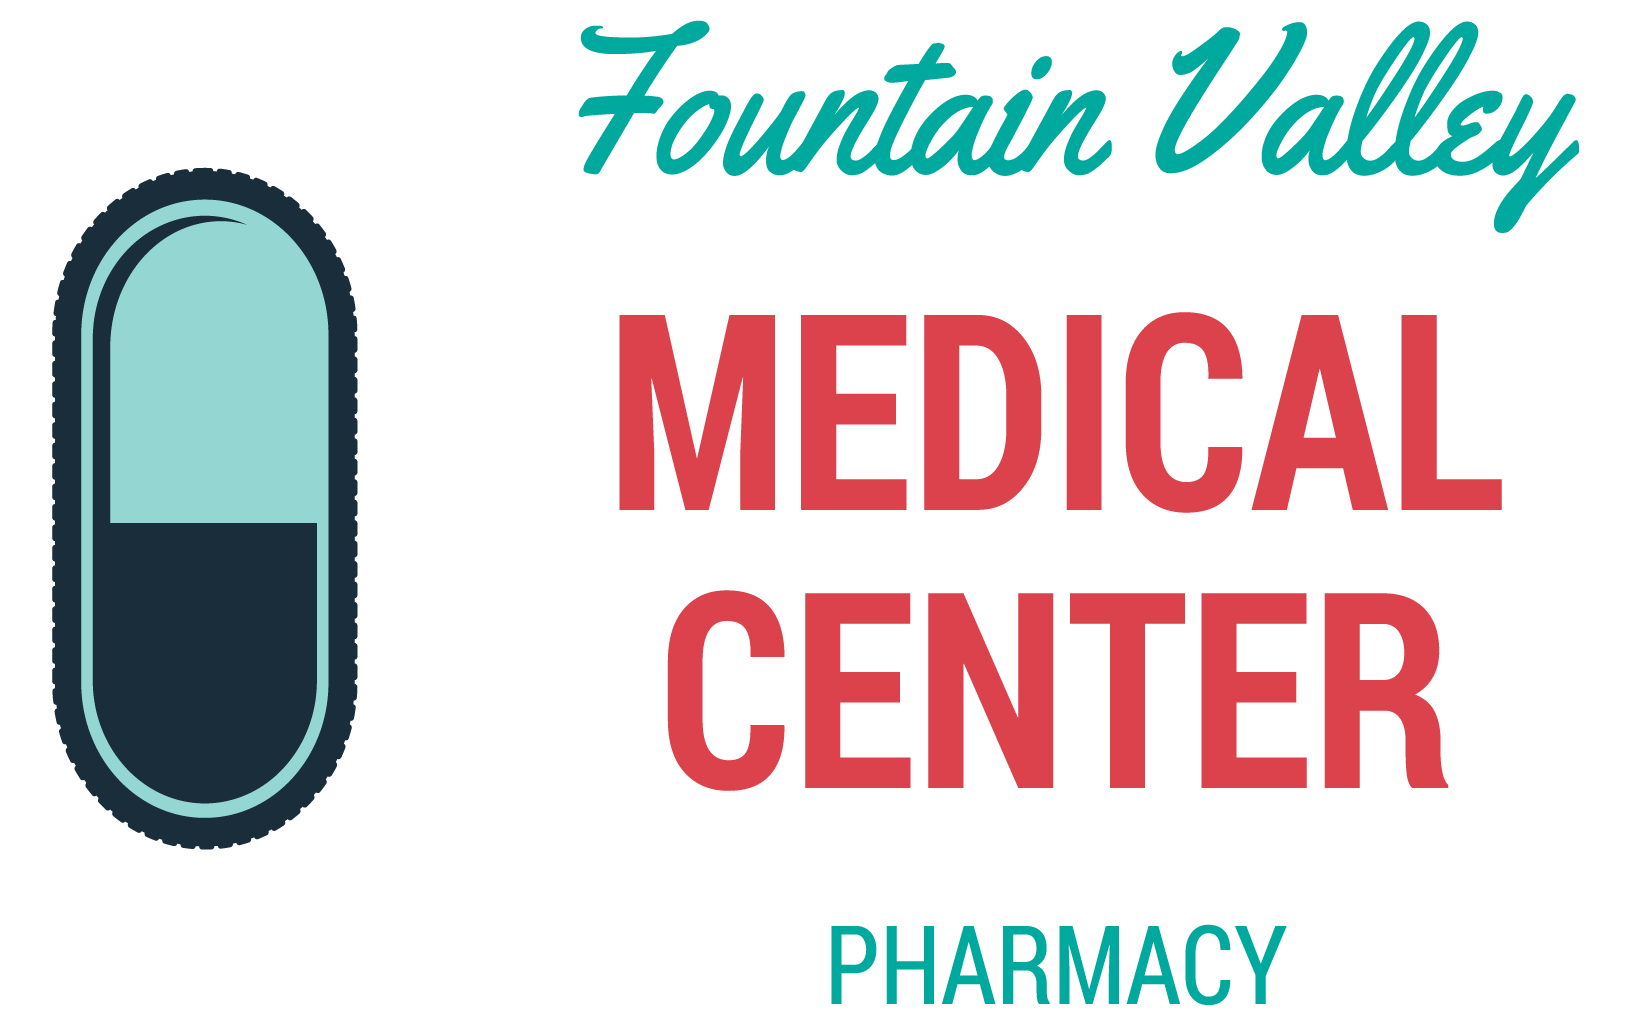 Fountain Valley Medical Center Pharmacy